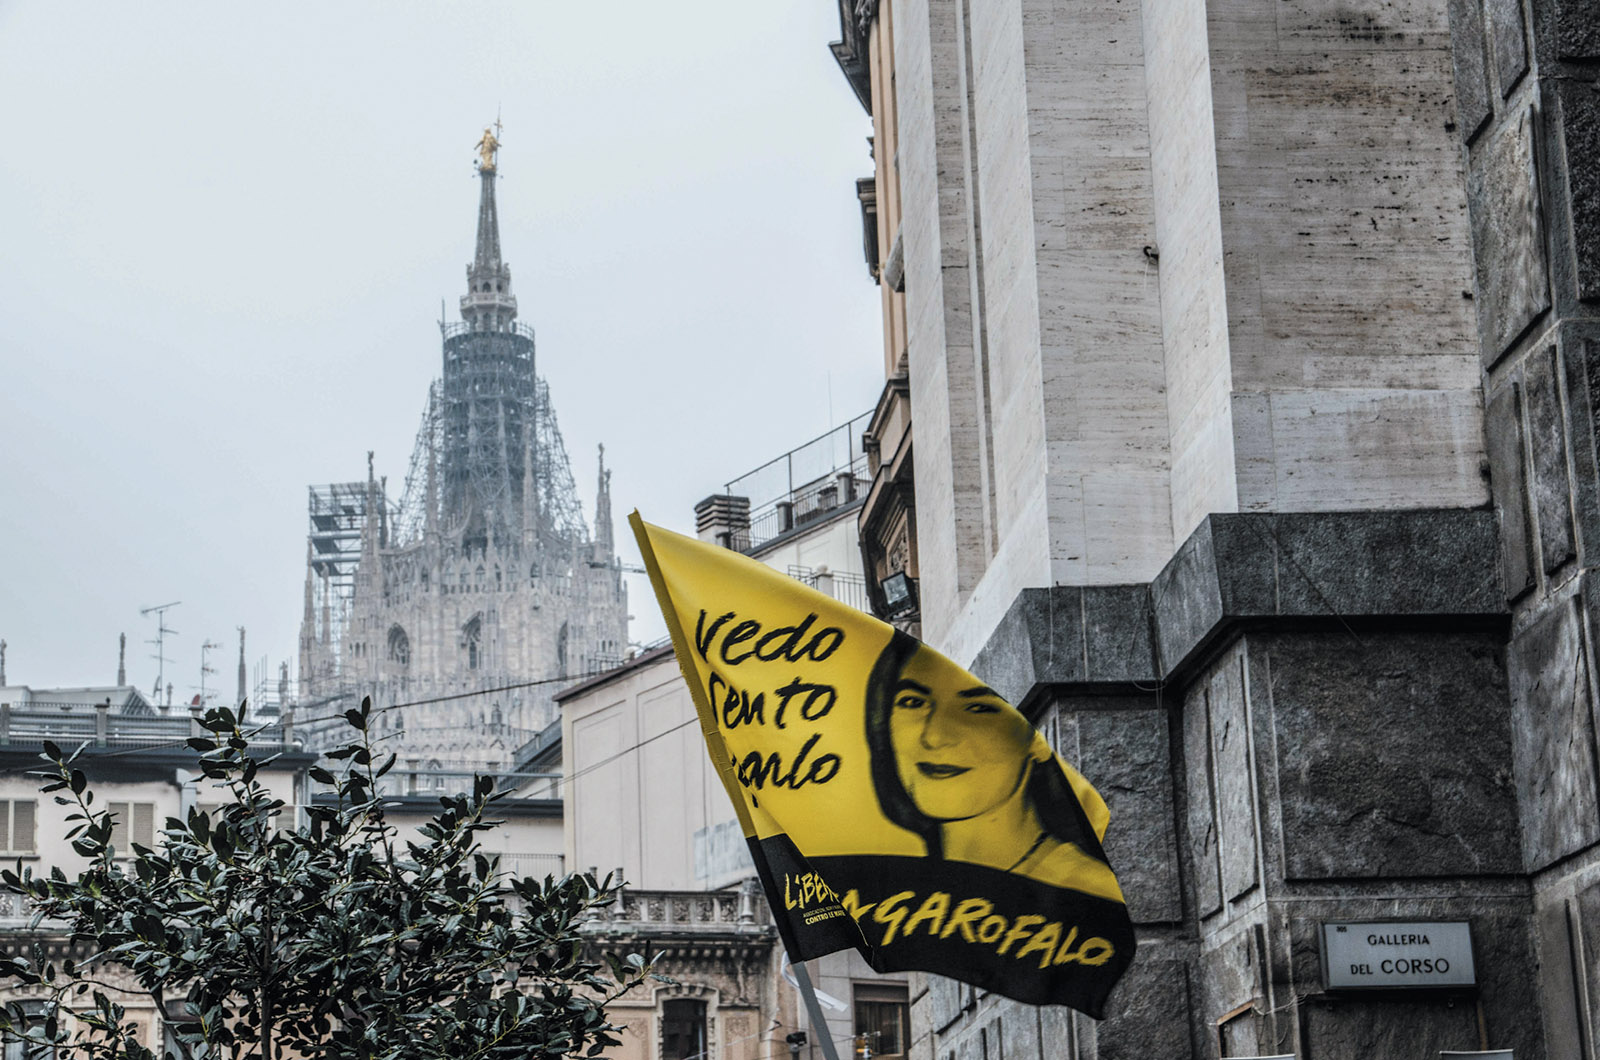 A flag with the anti-mafia slogan 'I see, I hear, I speak' and a picture of Lea Garofalo at her funeral, Milan, 2009